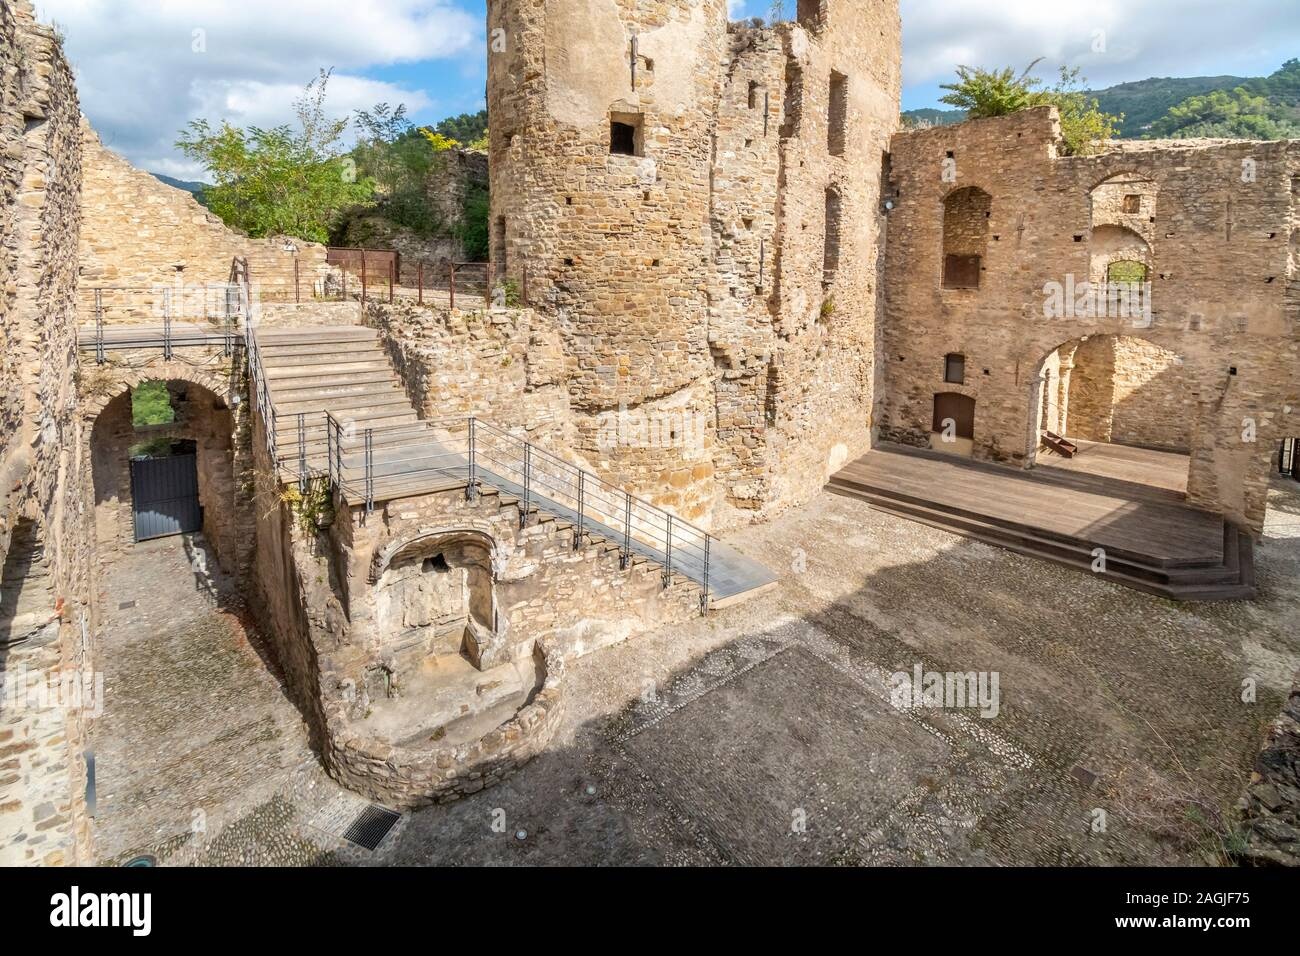 The interior of the ancient ruins of Doria castle or castrum, built in the 12th century on a mountaintop in the Ligurian village of Dolceacqua, Italy Stock Photo